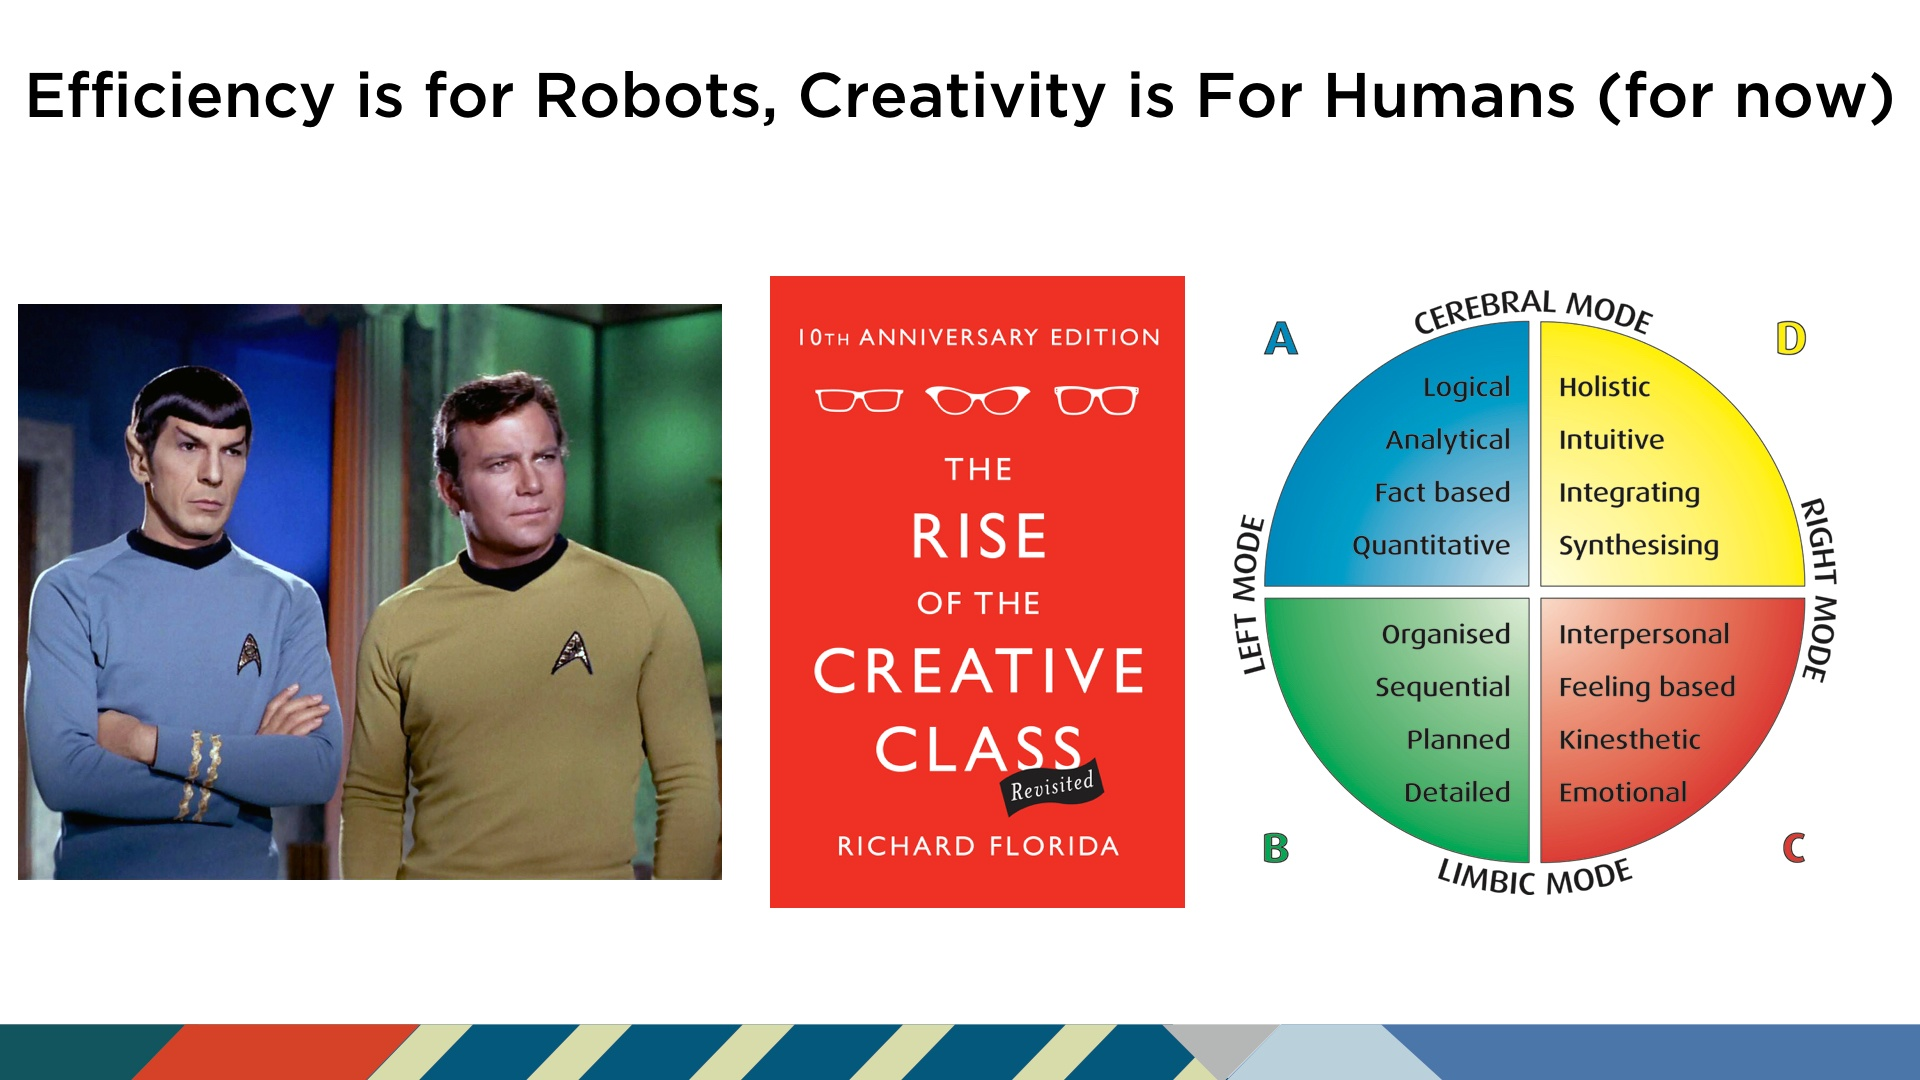 Spock and Kirk HBDI Futurist Anders Sorman-Nilsson